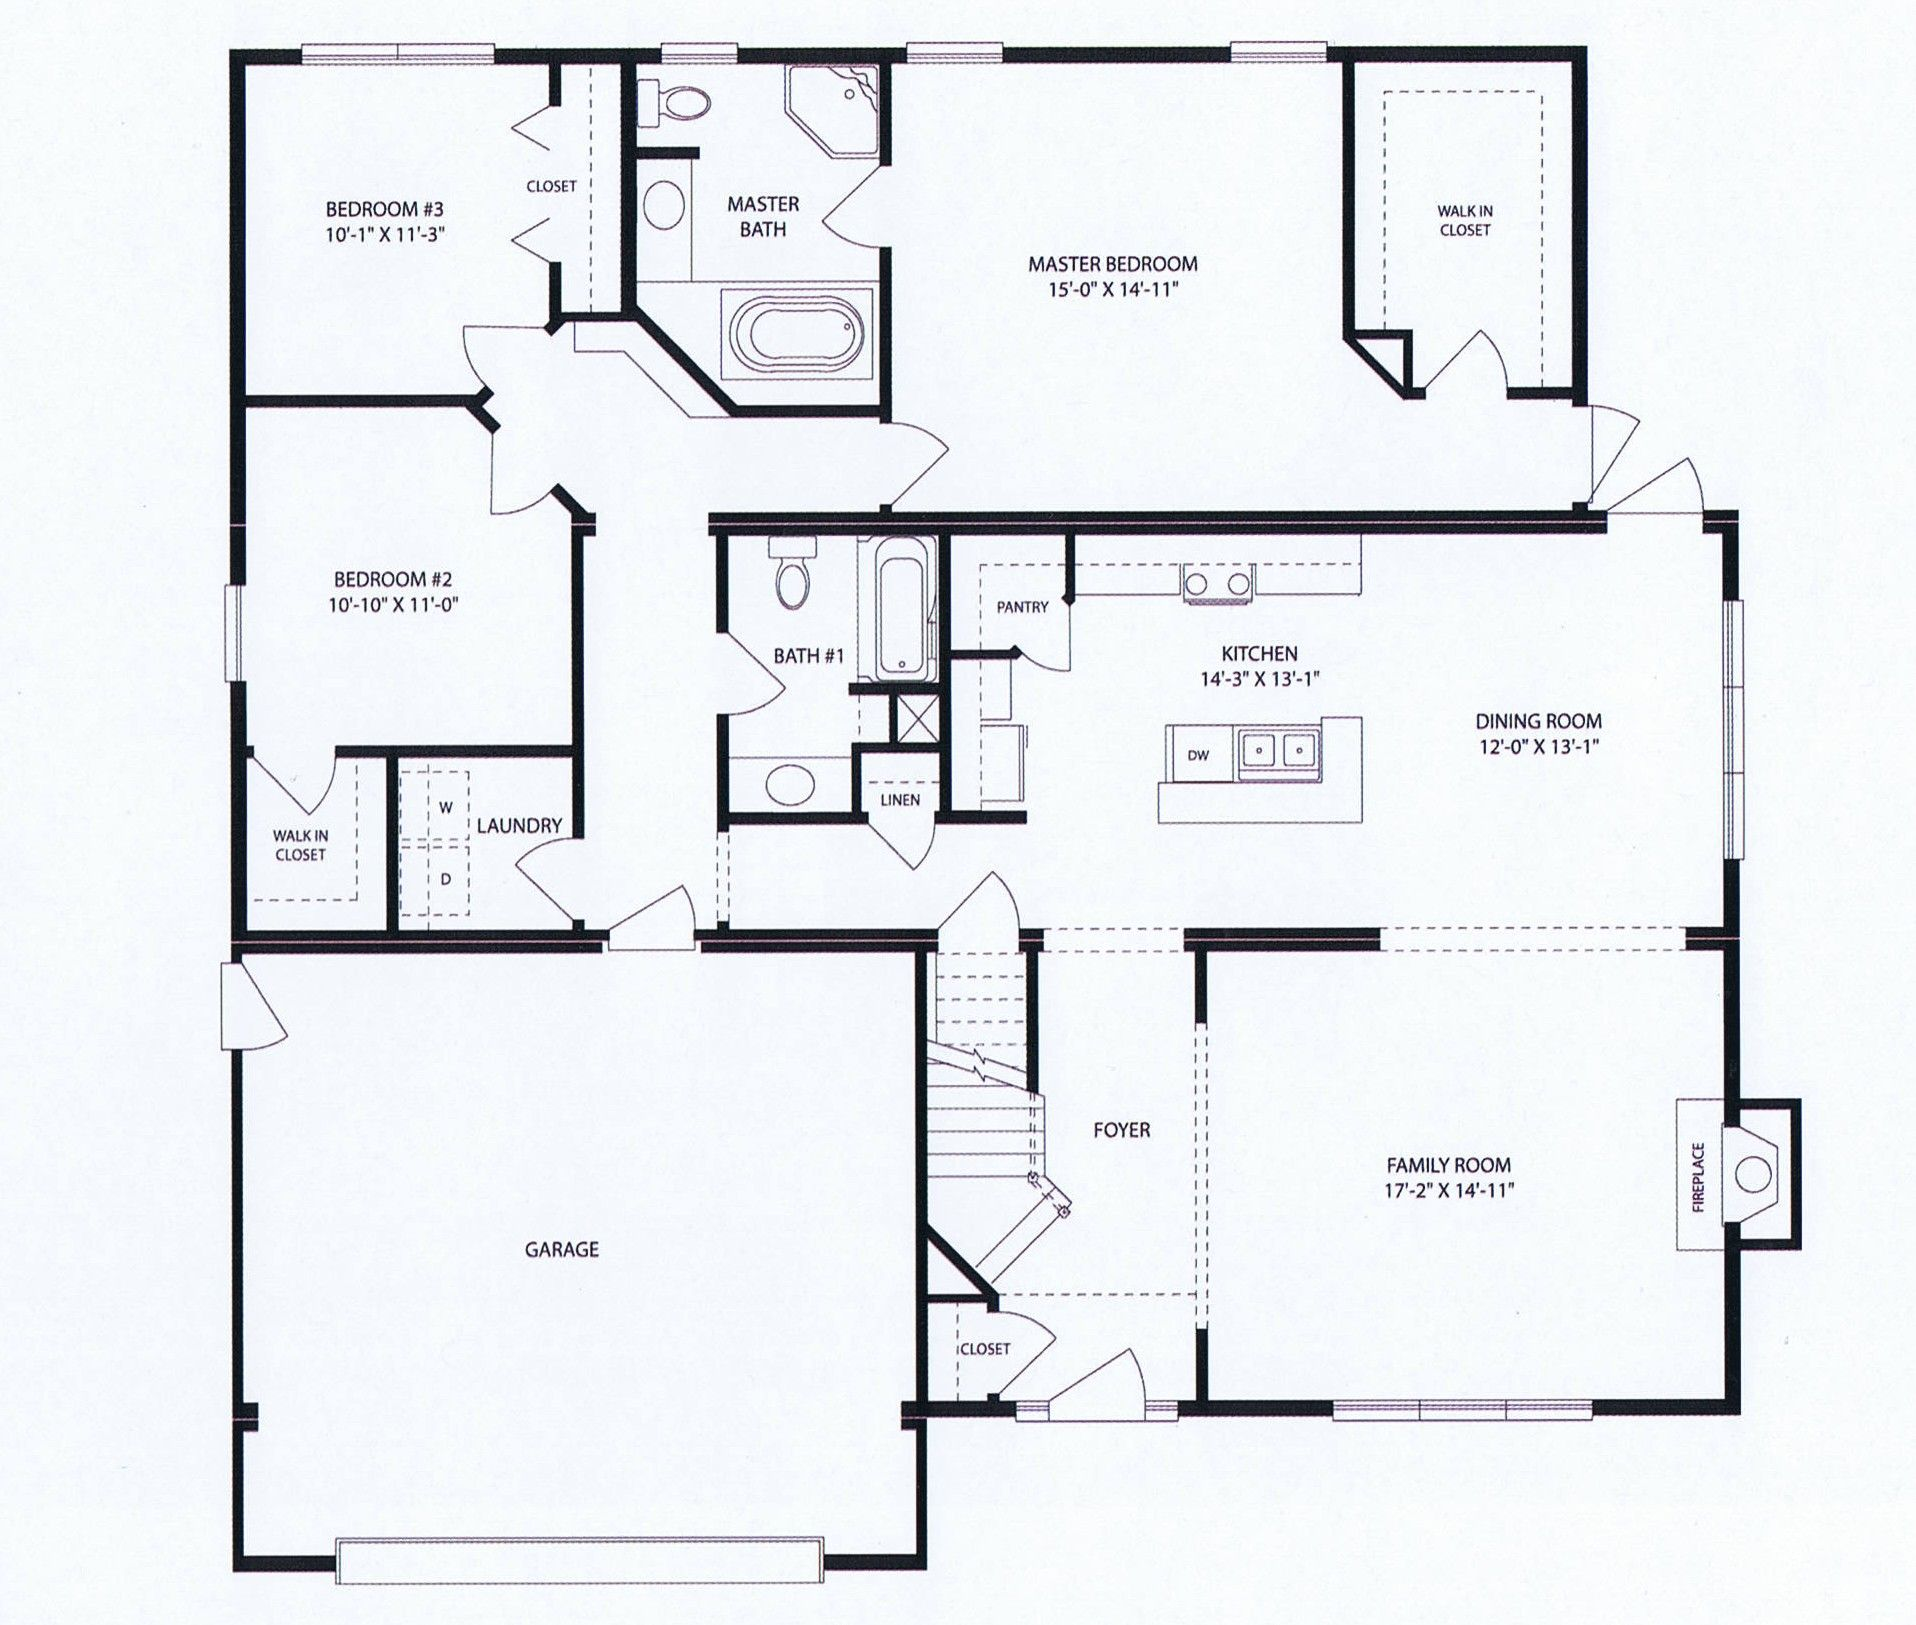 Pin By Angela Brad On House Plans